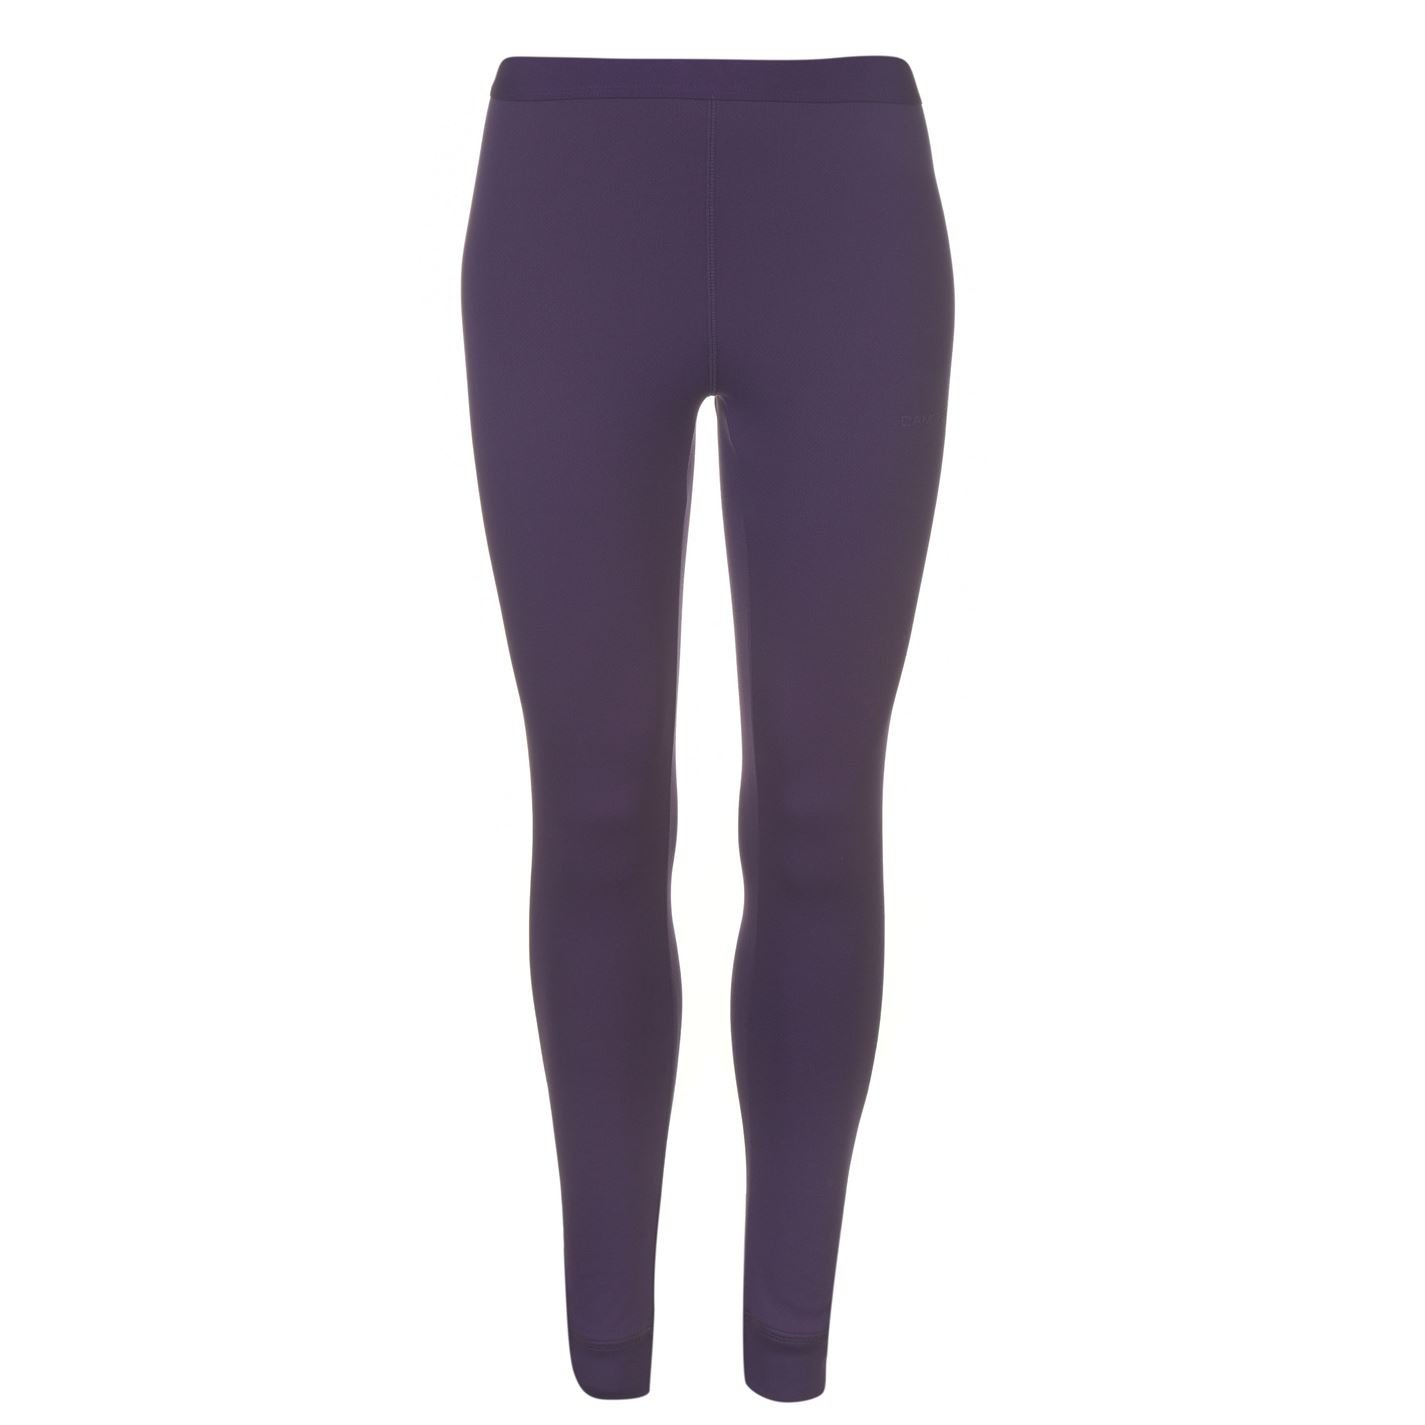 Campri Damen Baselayer Hose Thermal Leggings Training Warm Thermo Leggins